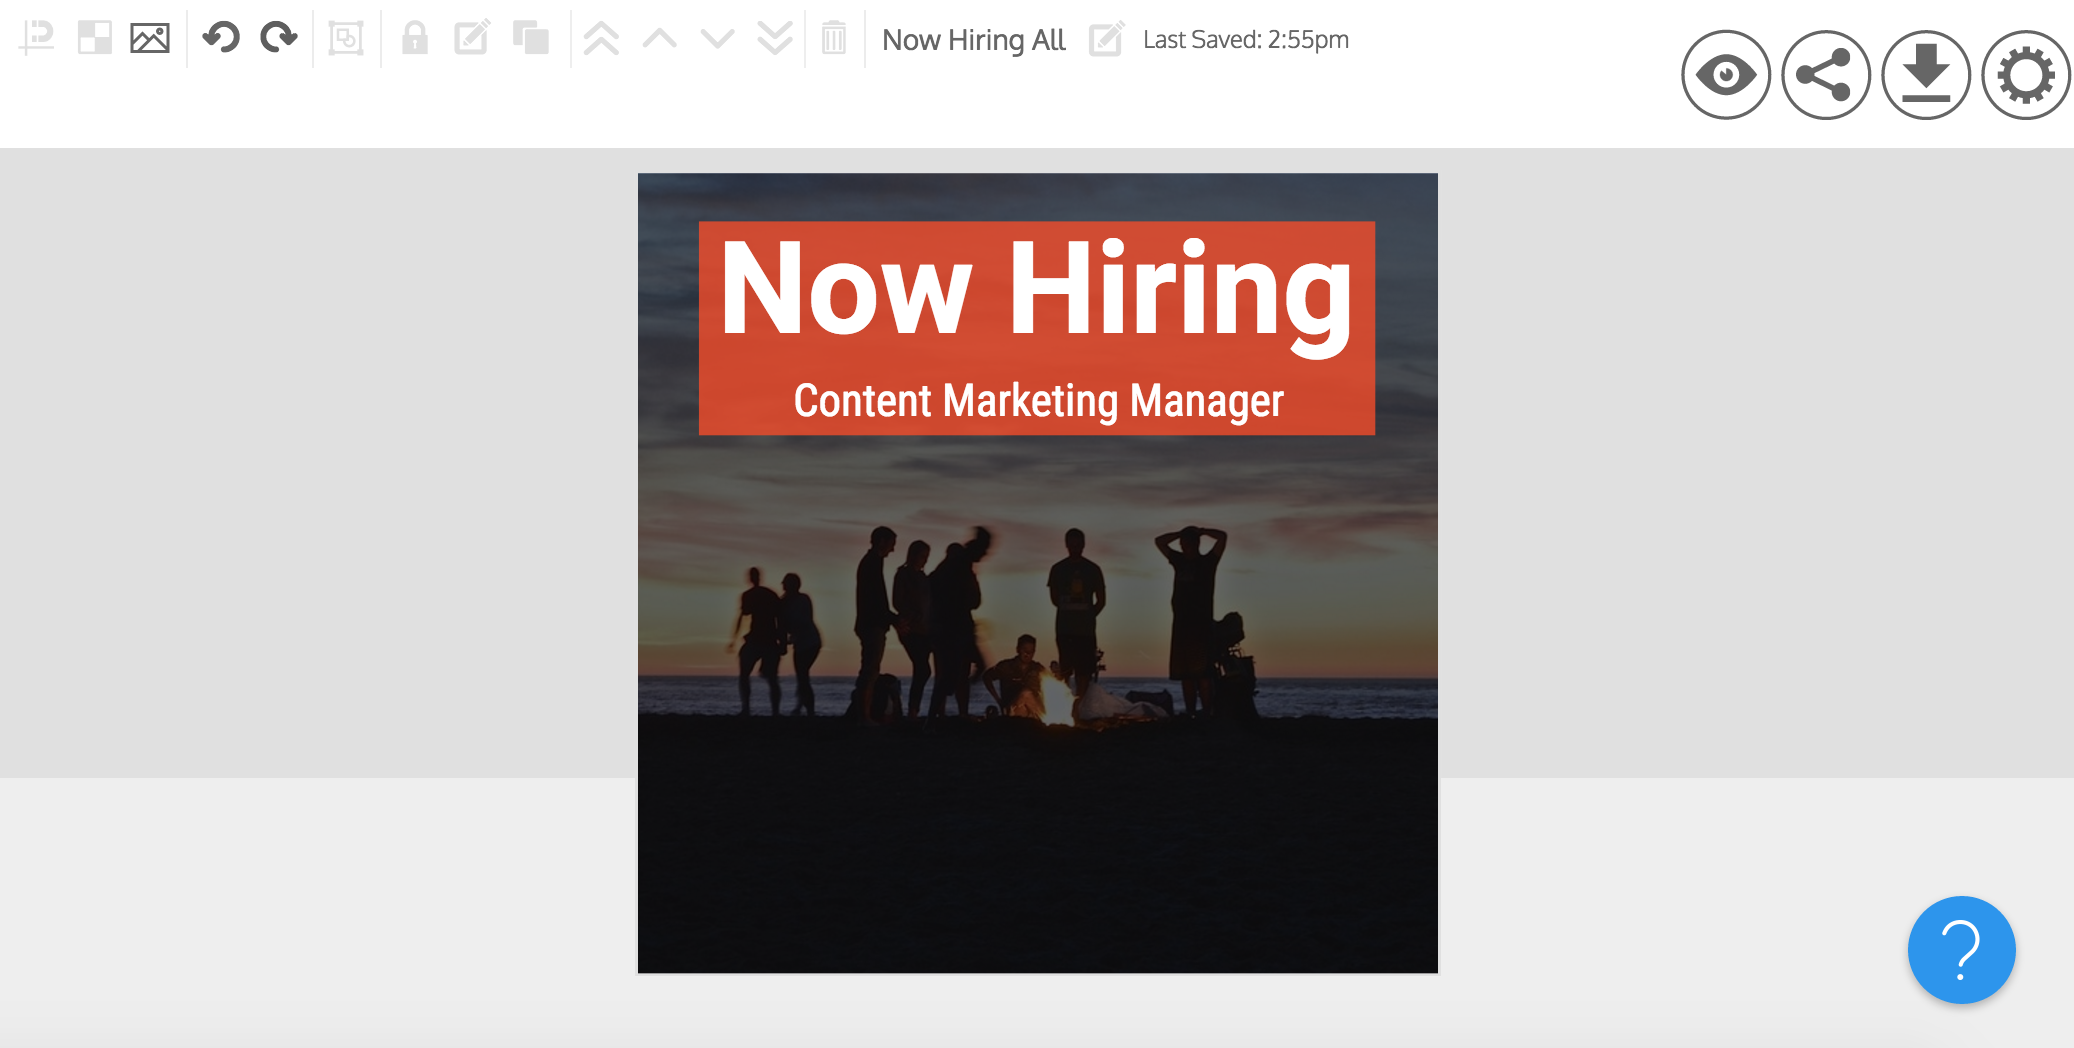 How to Create Visuals For a Twitter Job Search